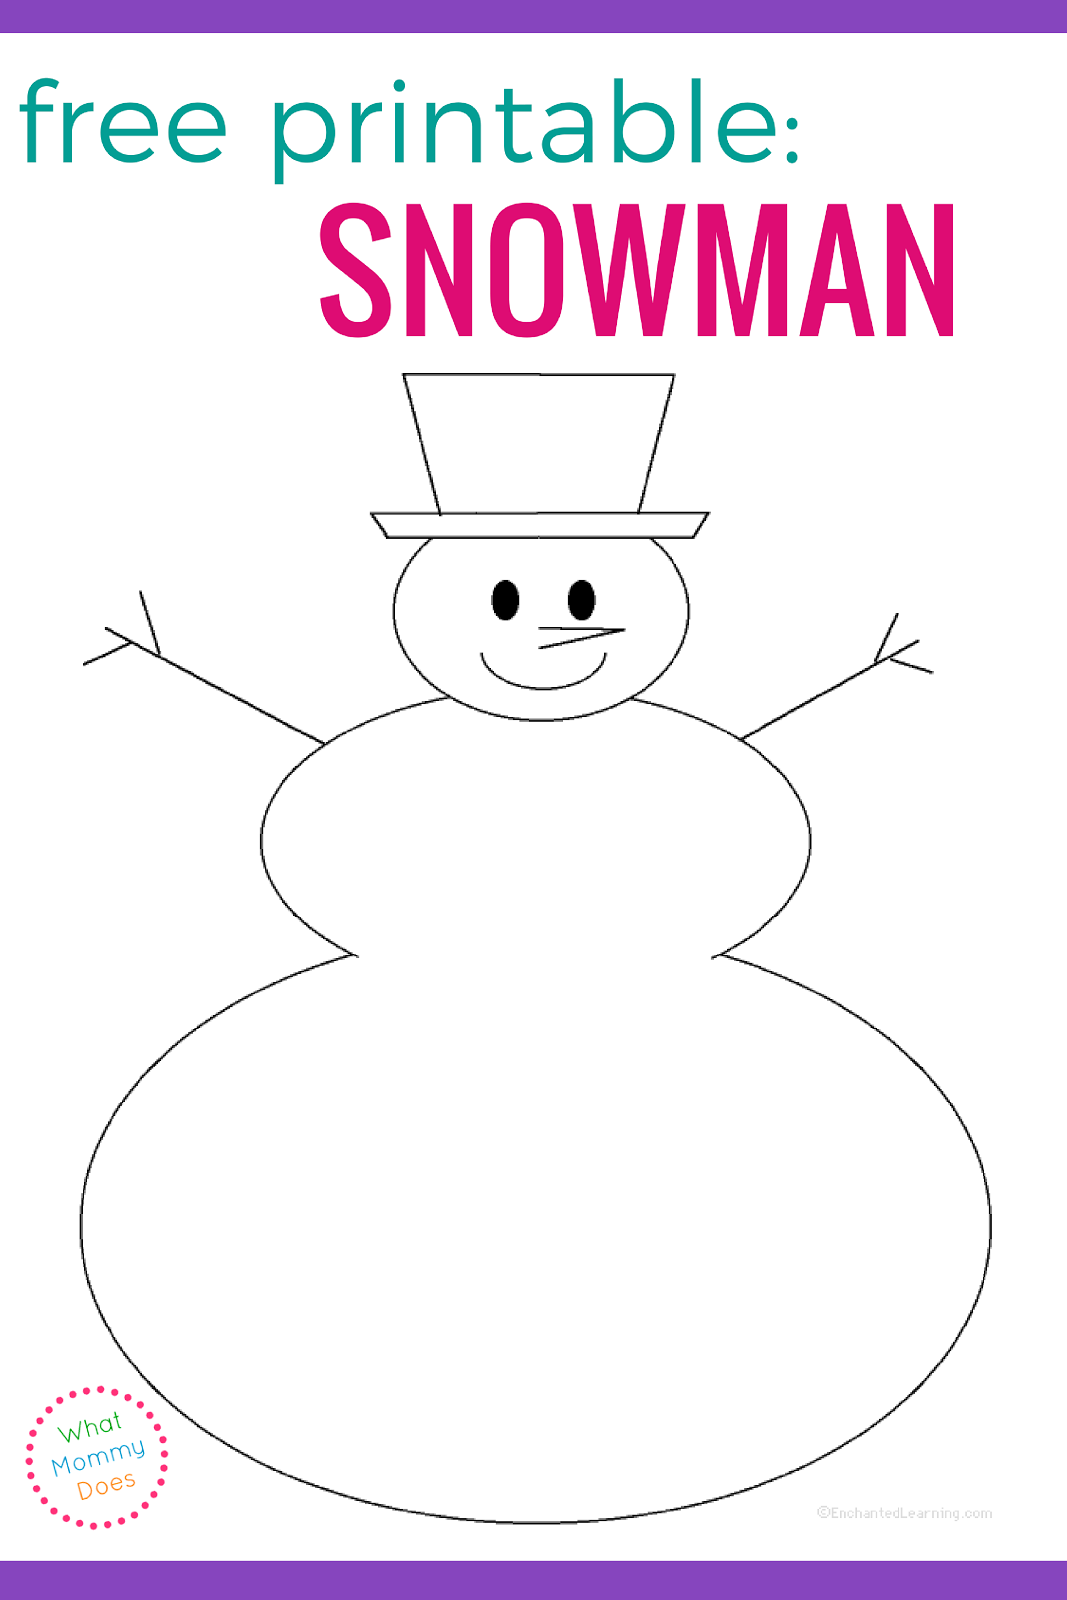 Free blank snowman templates what mommy does for Snowman templates free